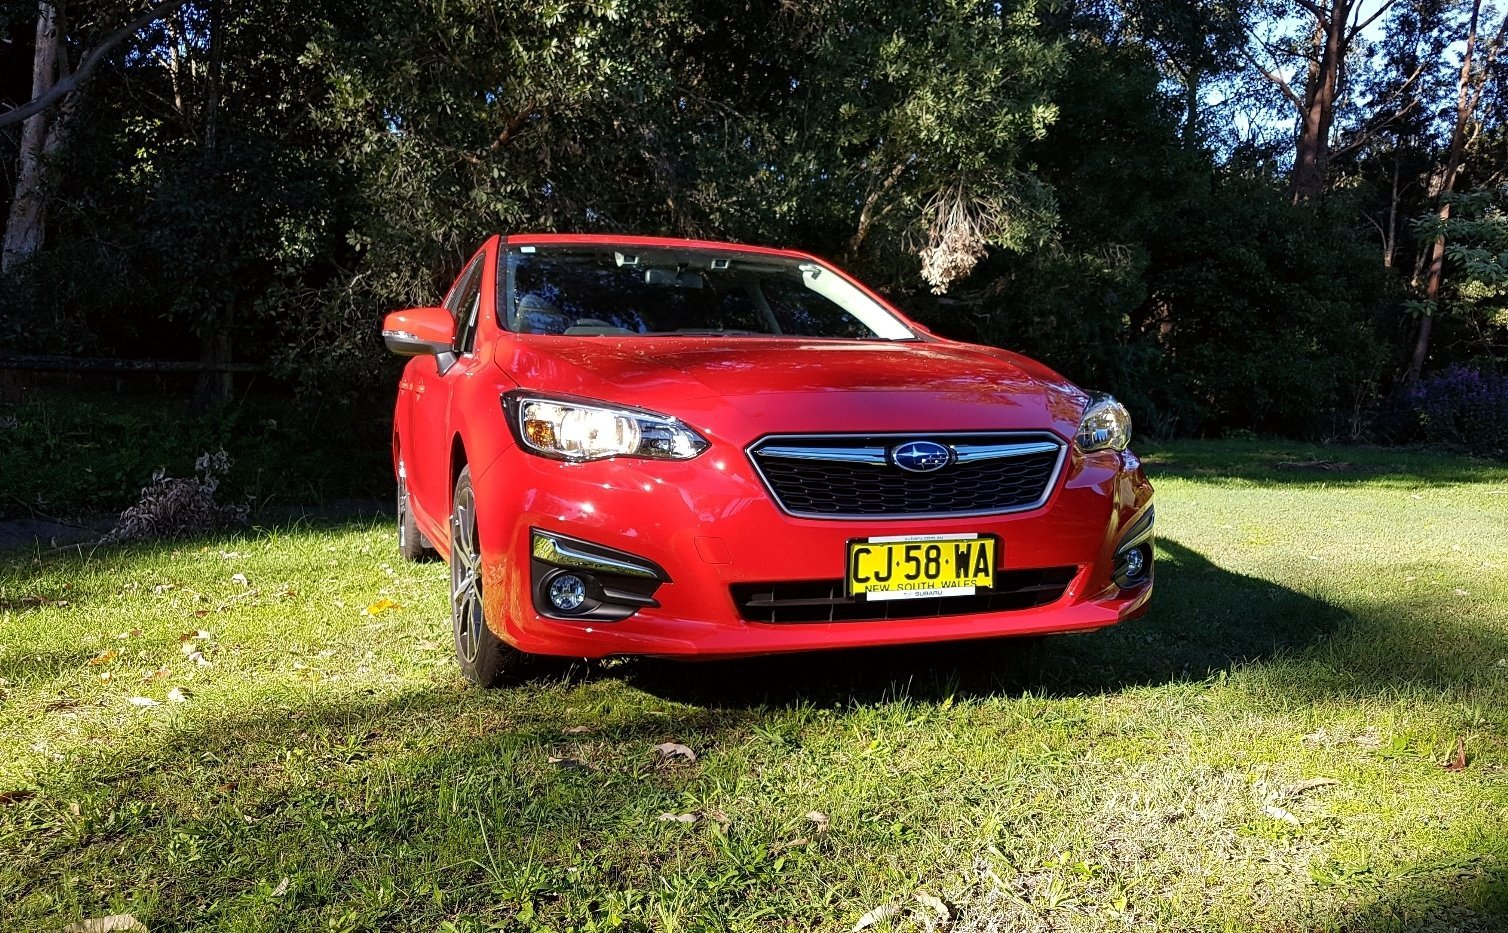 hight resolution of our road test vehicles were provided by subaru australia to find out more about the 2017 subaru impreza 2 0 l and 2 0 s contact your local subaru dealer